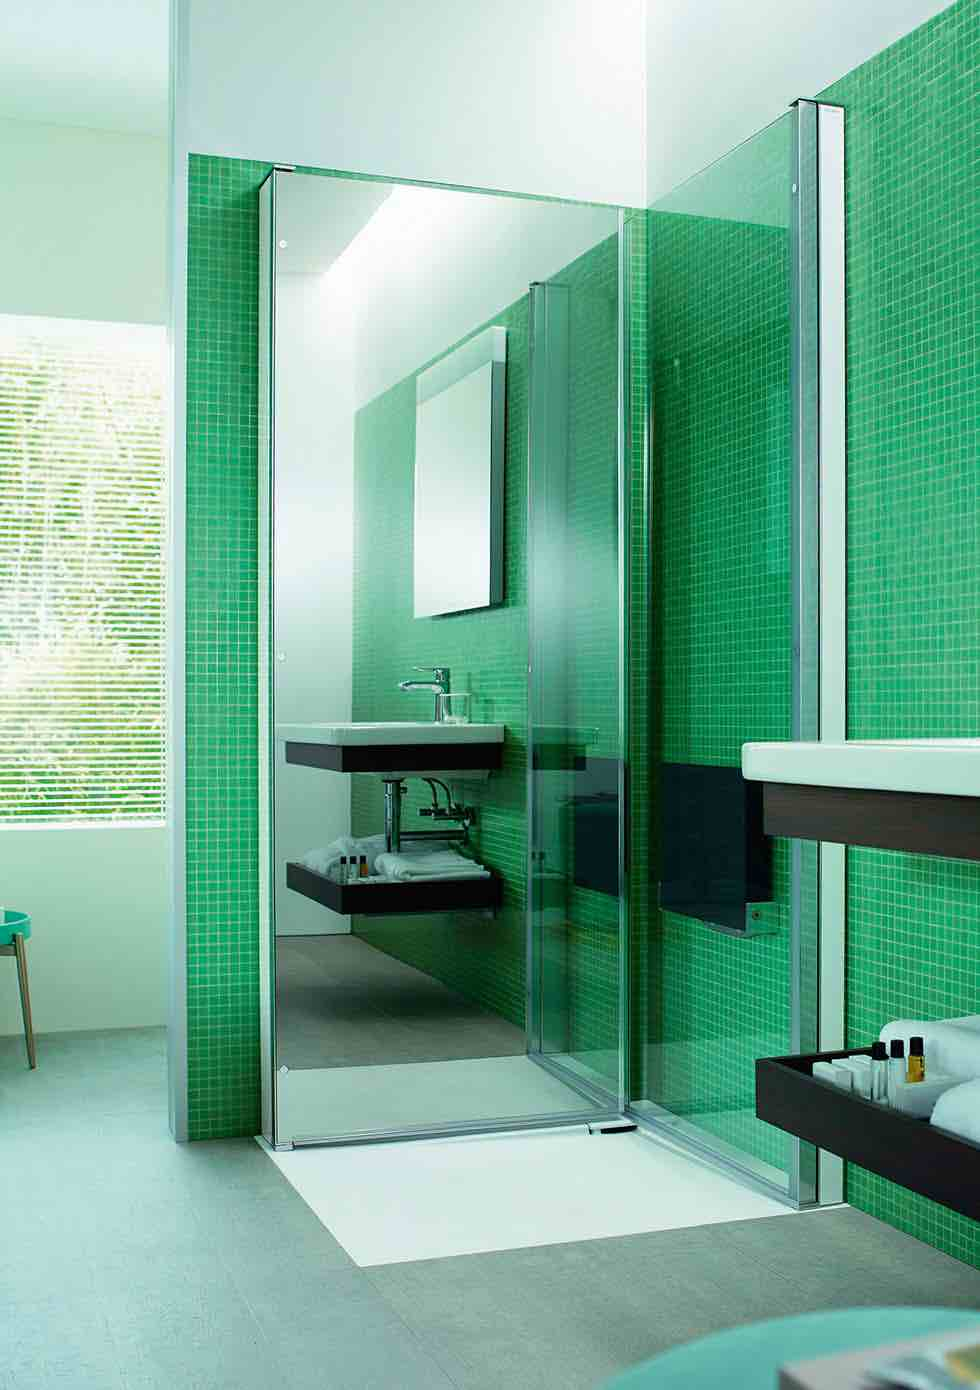 15 bathroom design ideas | homebuilding & renovating